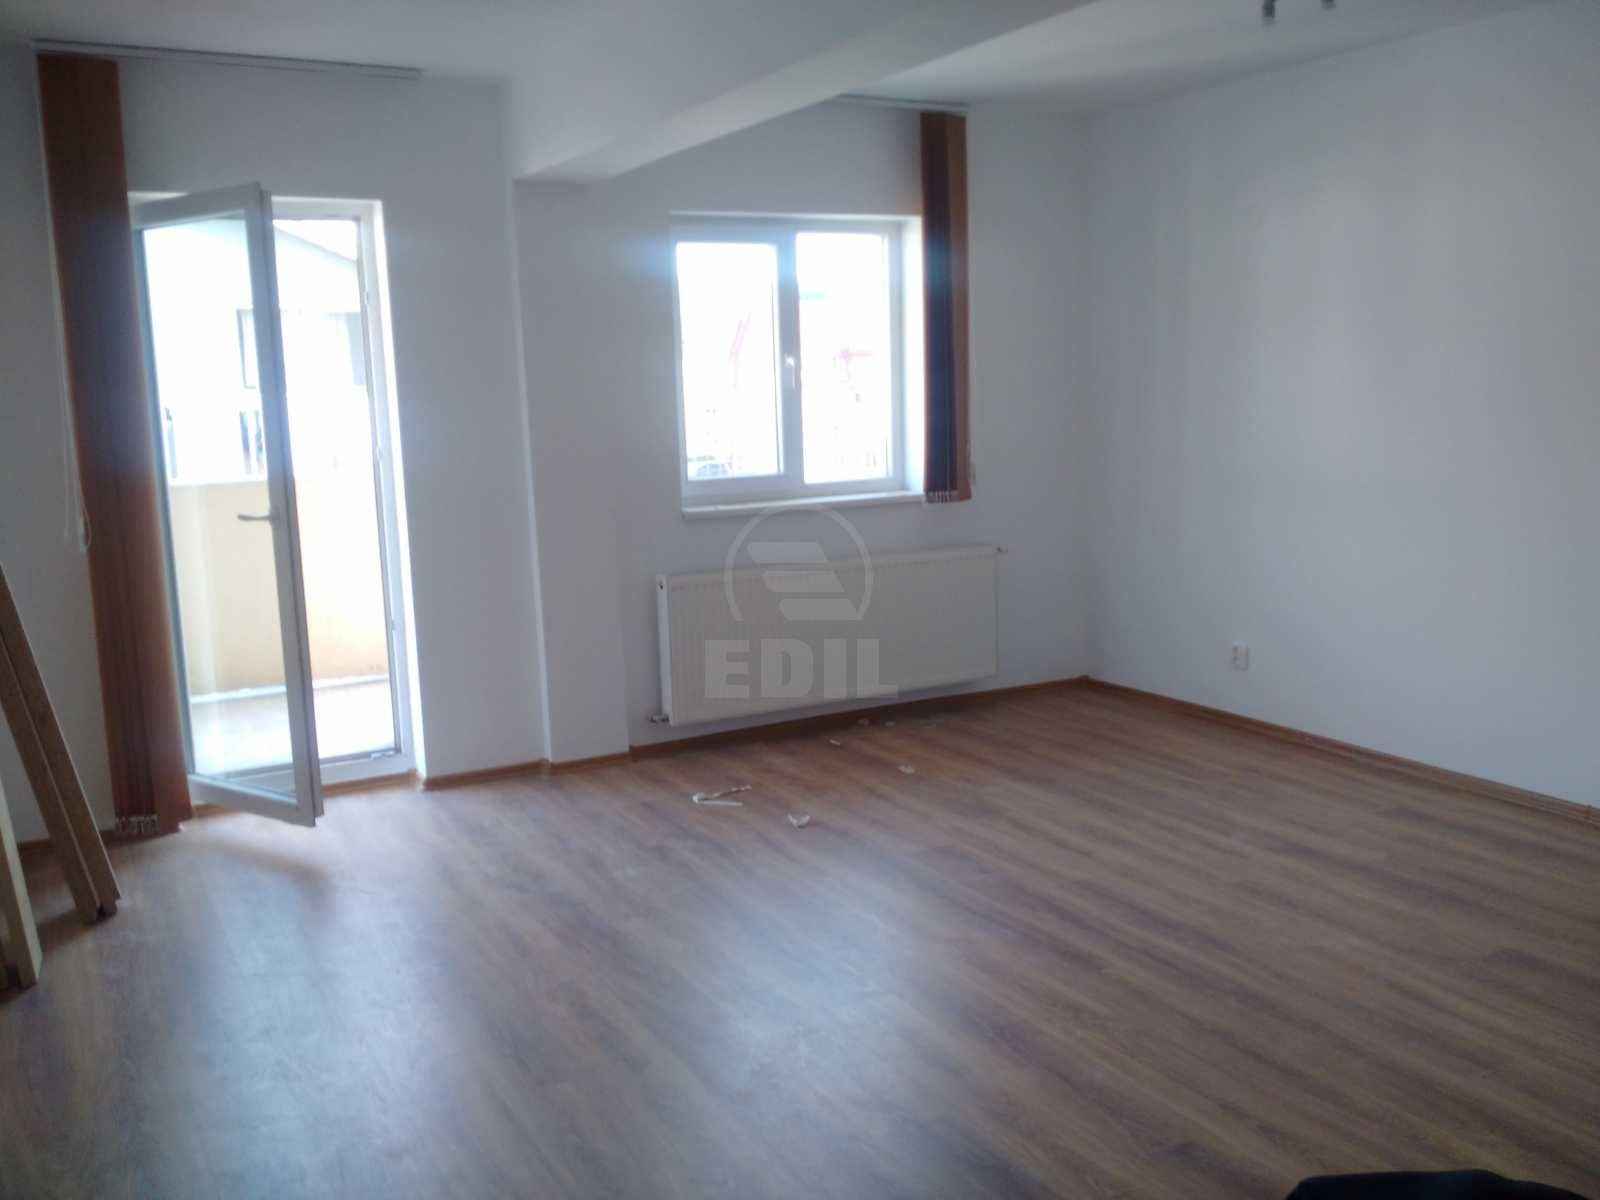 Apartment for rent 3 rooms, APCJ233199FLO-8